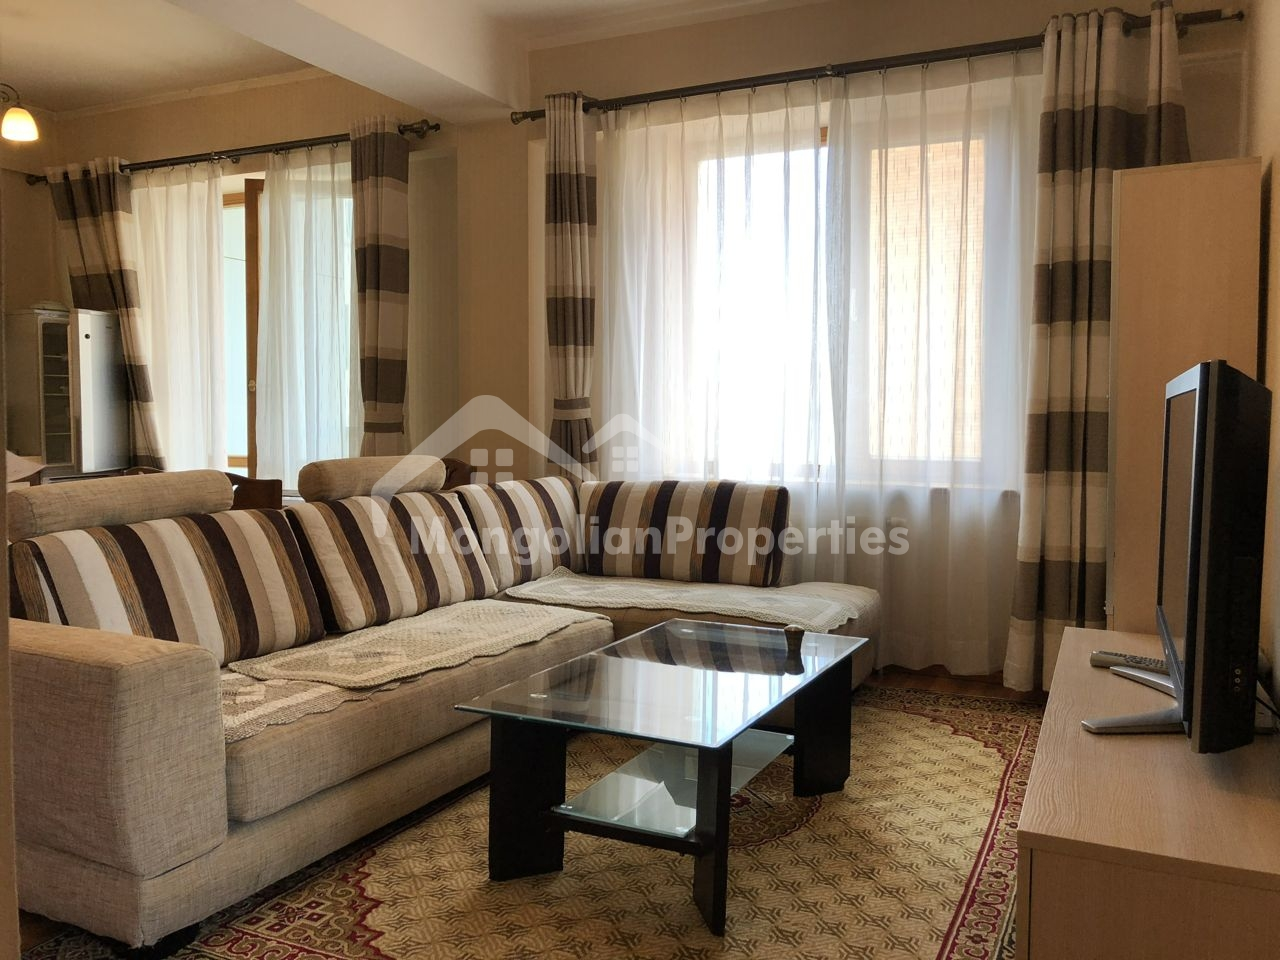 Cozy 2 bedroom apartment is for rent near UN house